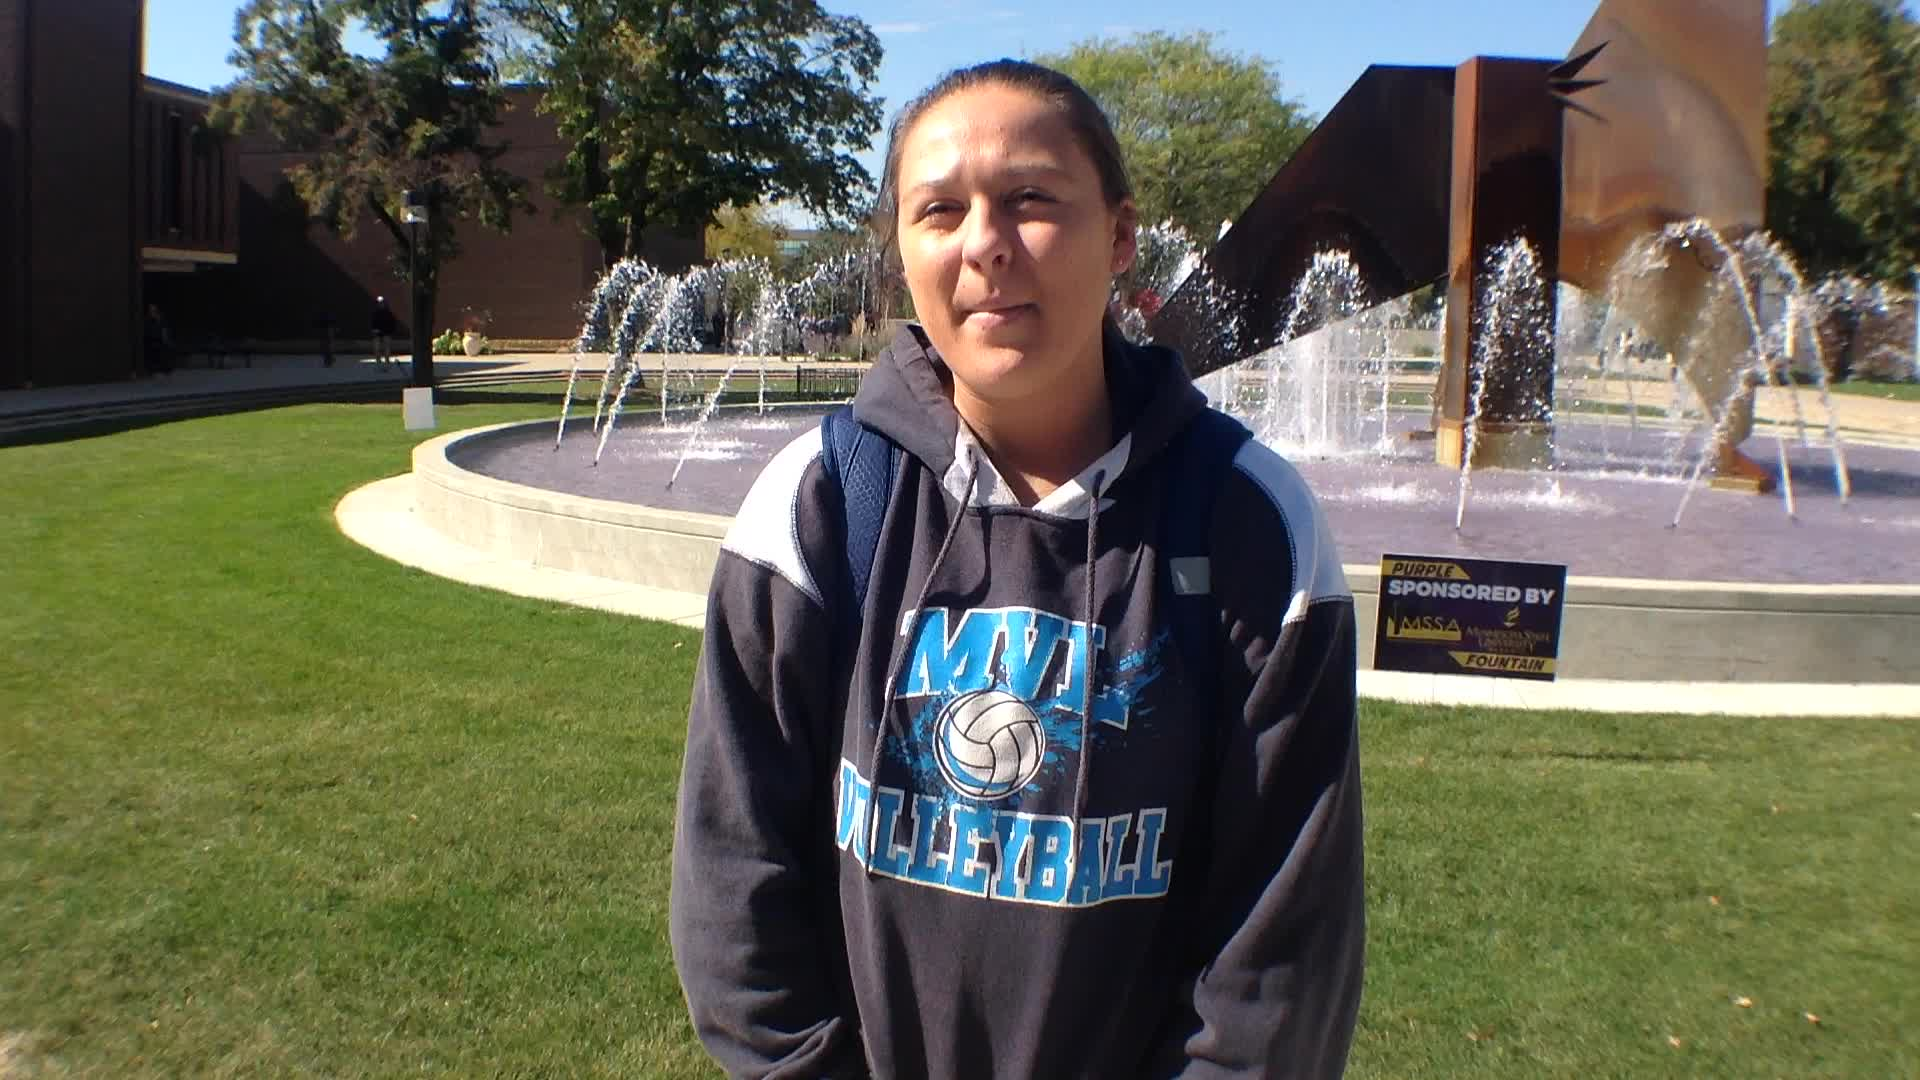 Nicole Rieger, New Ulm, MN - Homecoming 2015 at Minnesota State University, Mankato